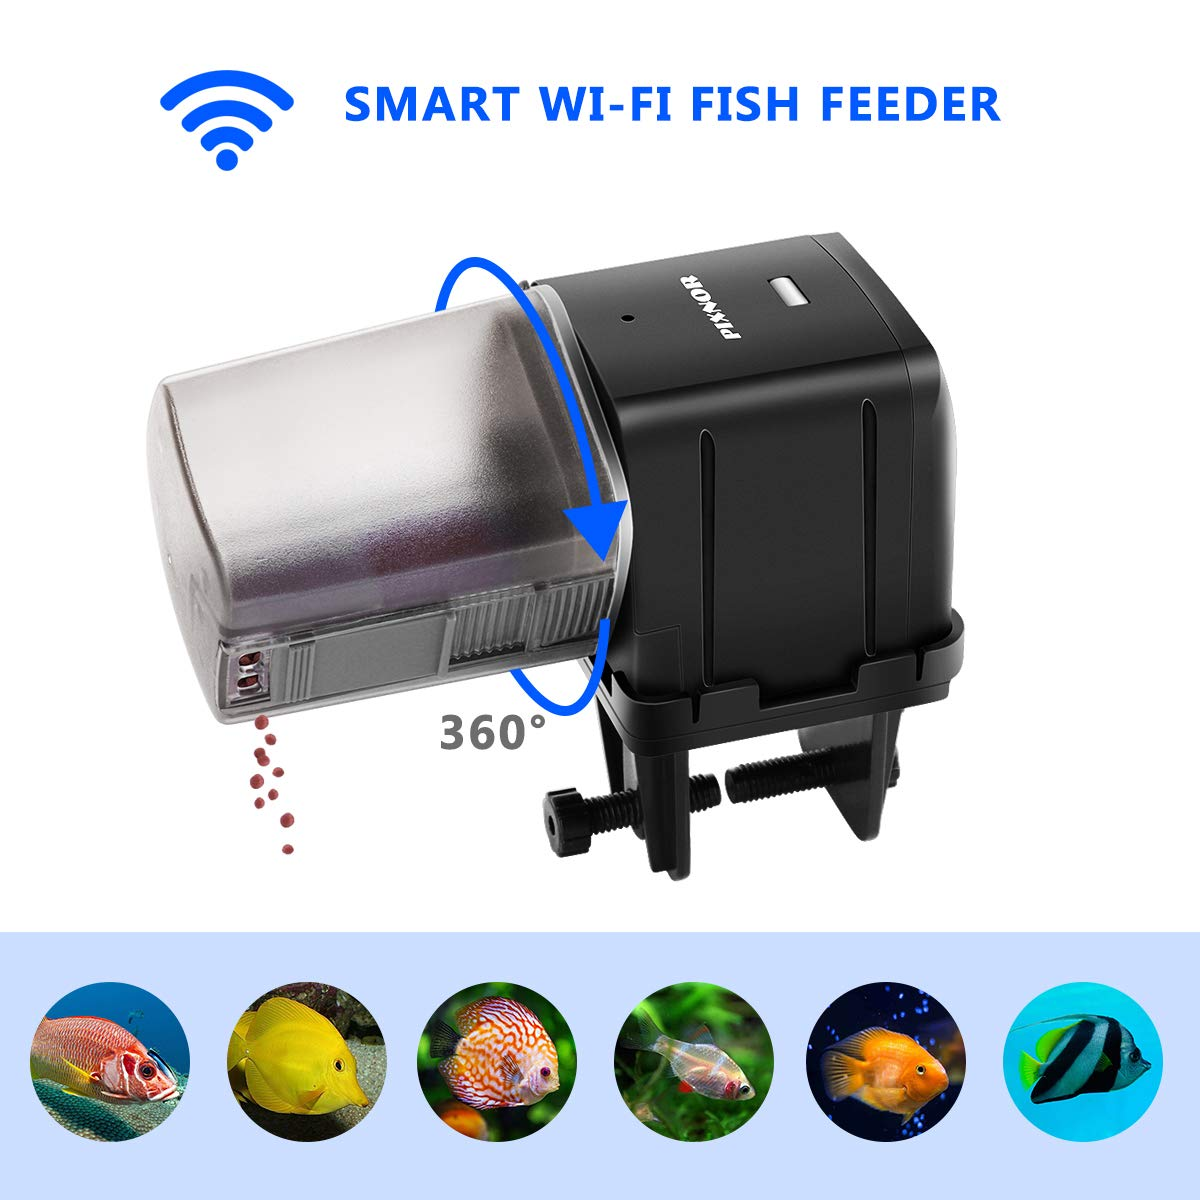 PIXNOR Automatic Fish Feeder Fish Food Dispenser Digital Feeding Unit for Aquarium Fish Tank (WiFi APP Remote Control and USB Powered) by PIXNOR (Image #8)